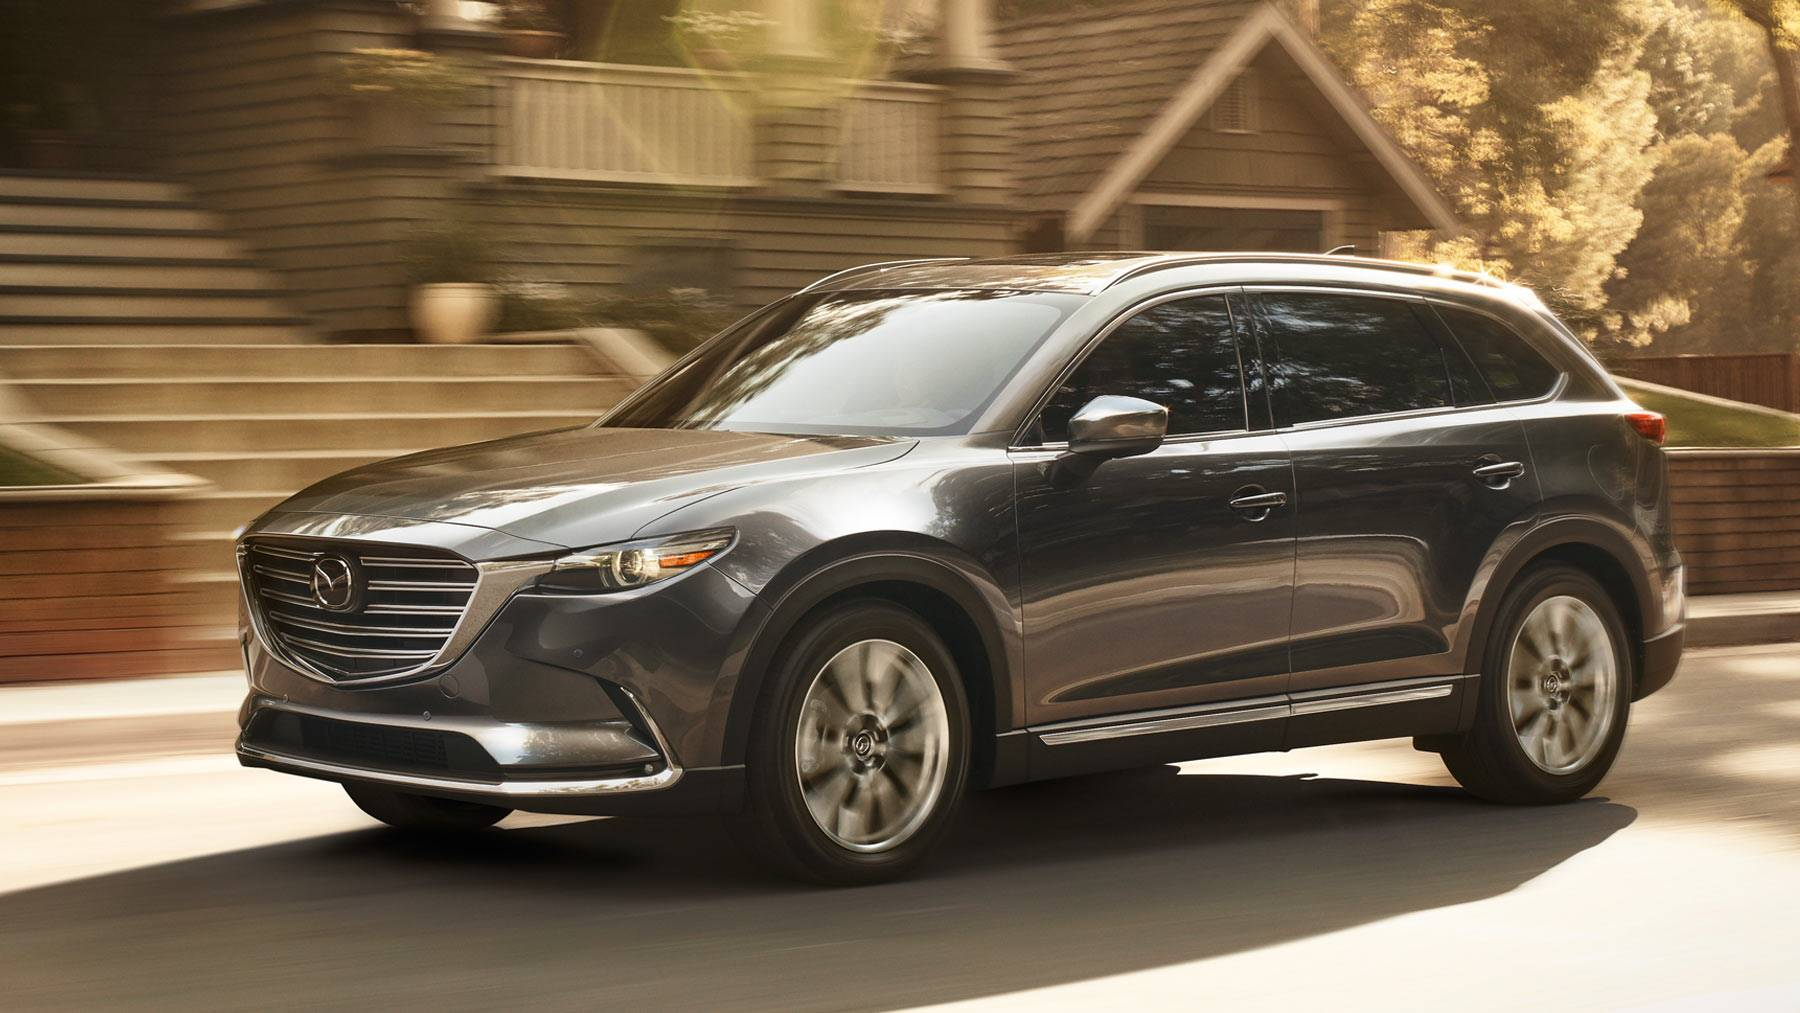 Which Mazda SUV is Best for Dog Owners?